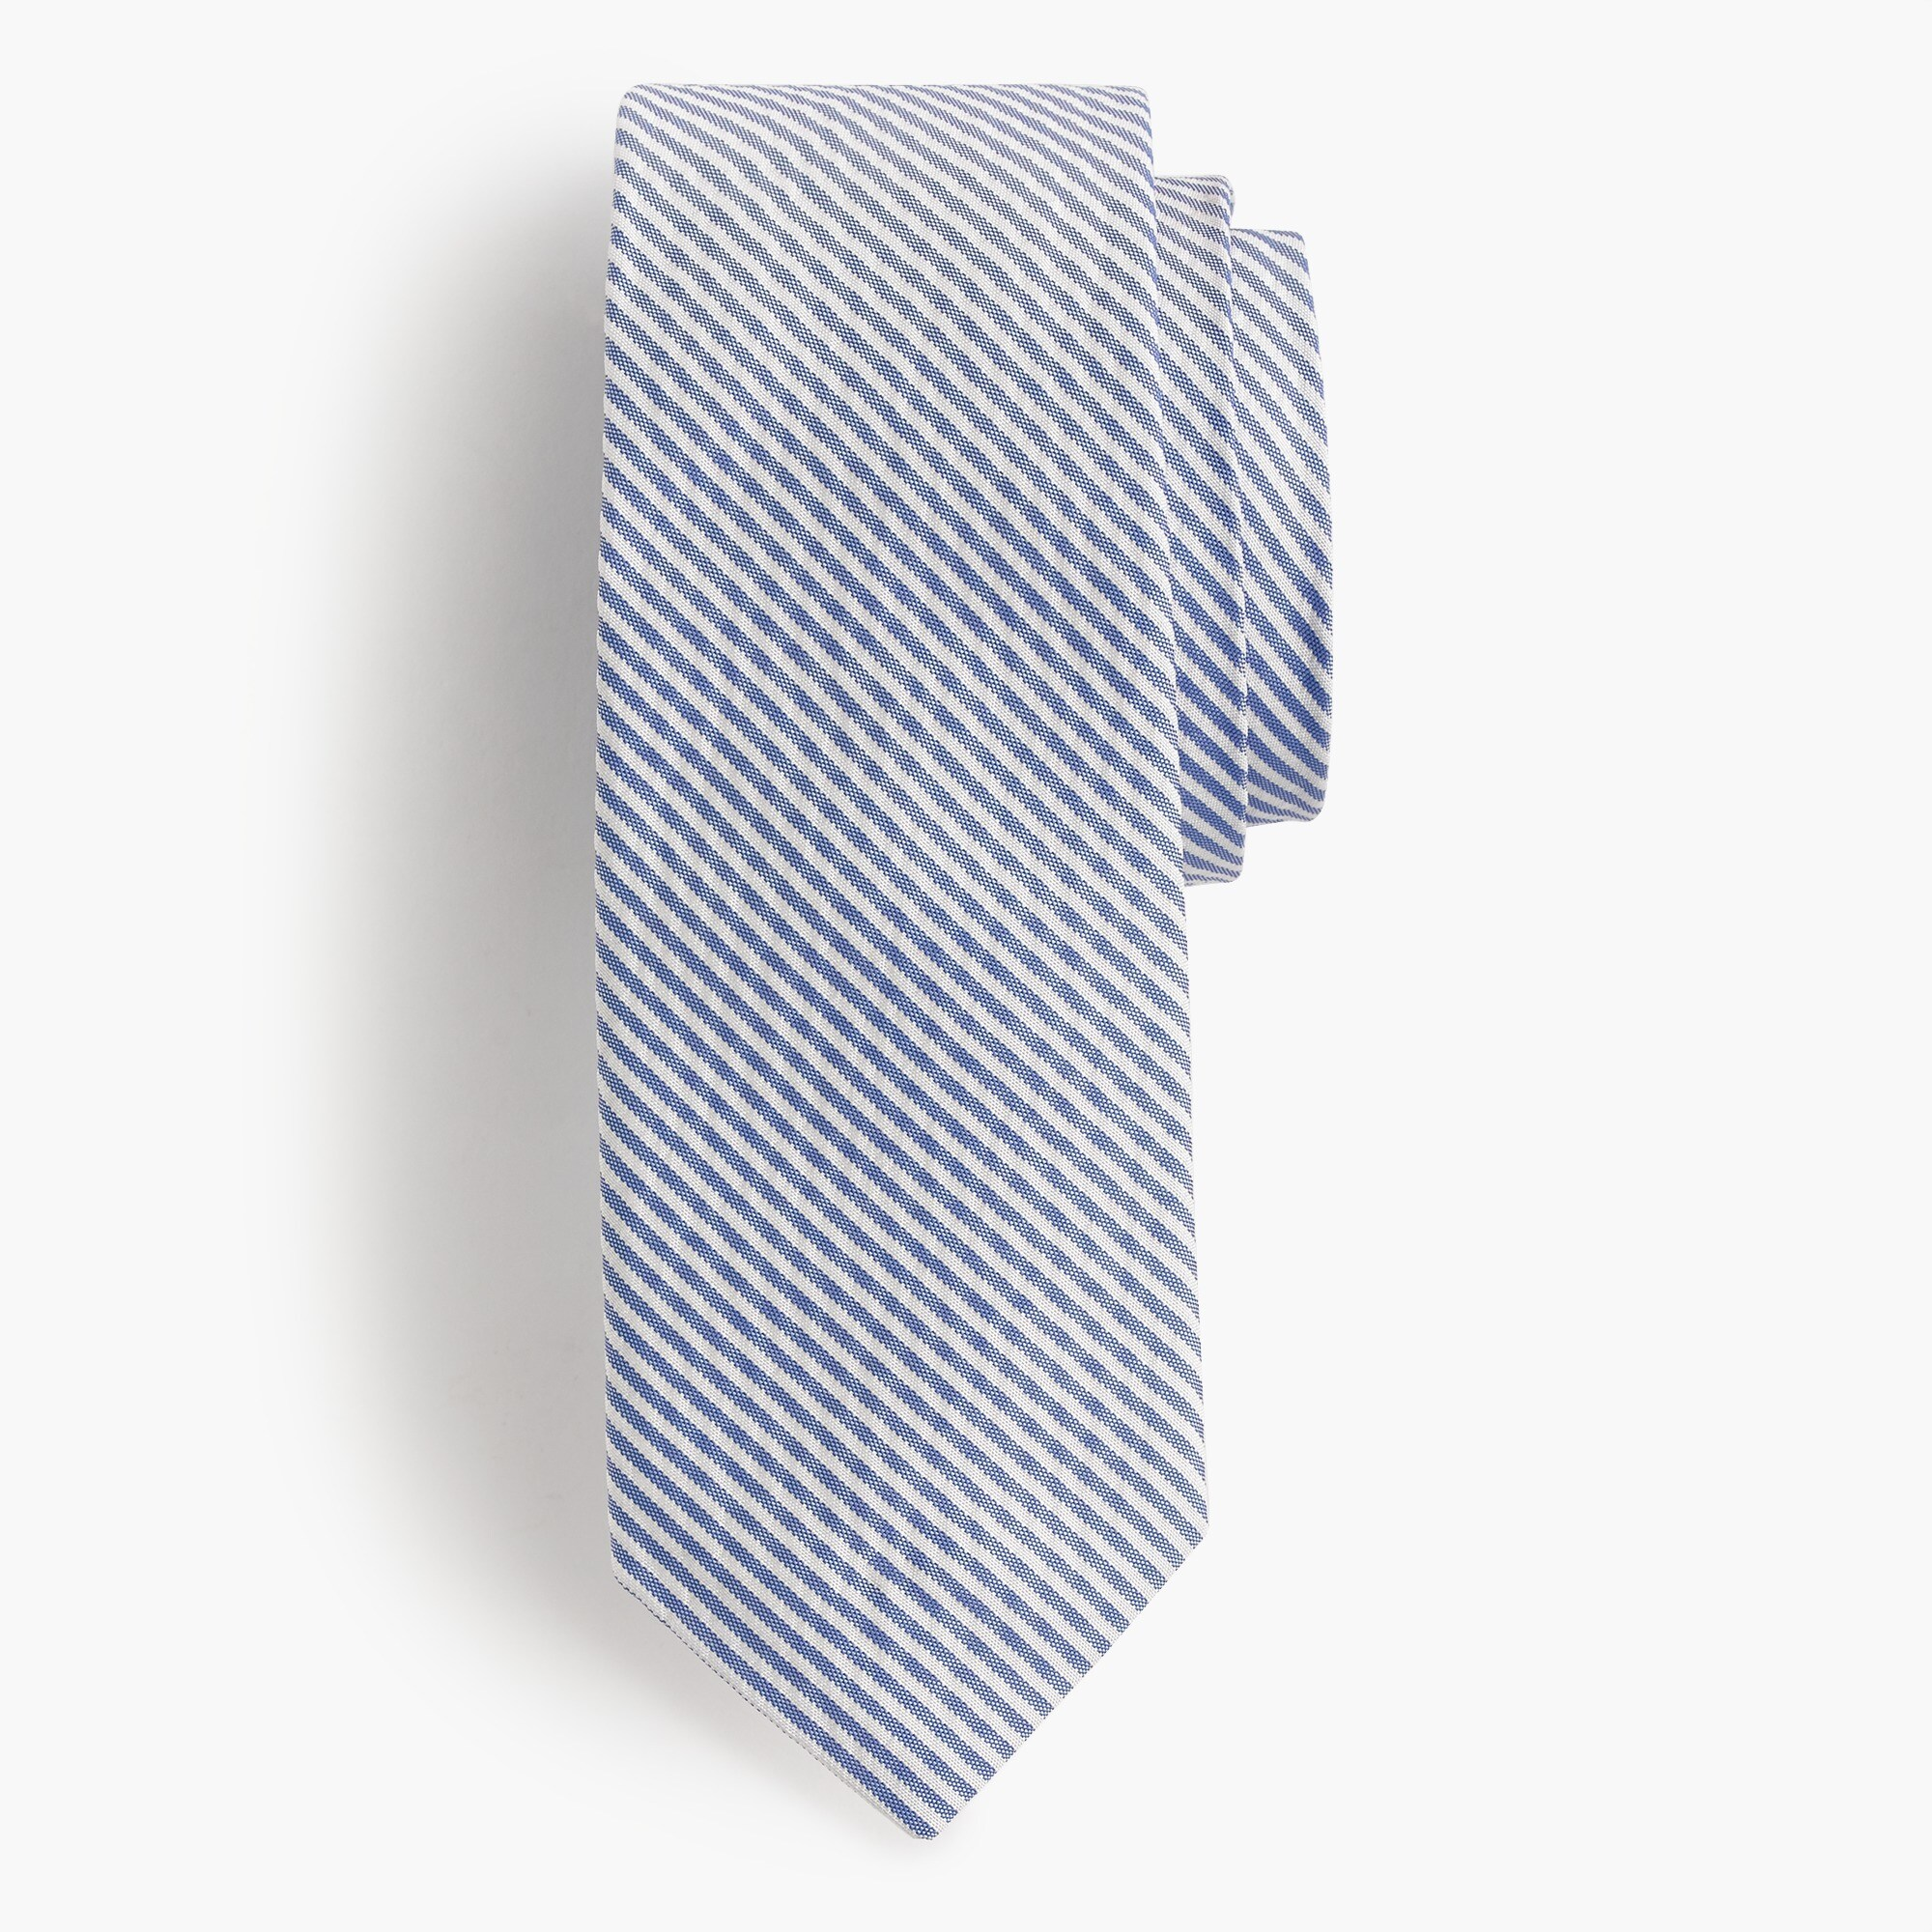 English silk tie in seersucker